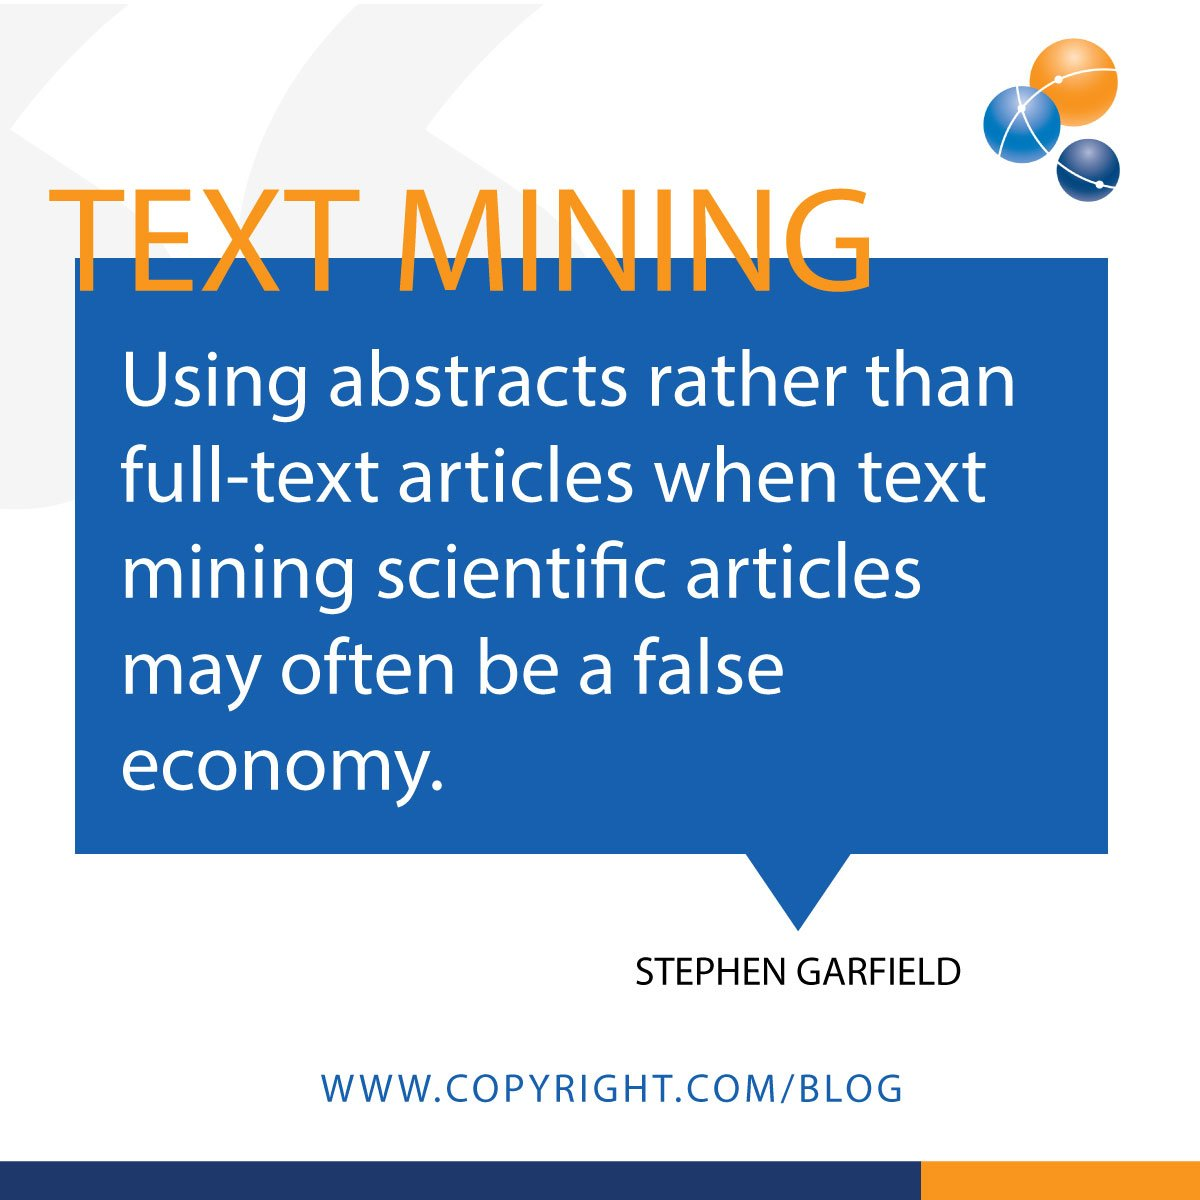 test Twitter Media - #TextMining on full-text offers more facts, more kinds of facts and quicker paths to insights than simply mining abstracts. Discover why you need the full picture. https://t.co/VouaLb2Z8C https://t.co/QRk1Ch9MDD